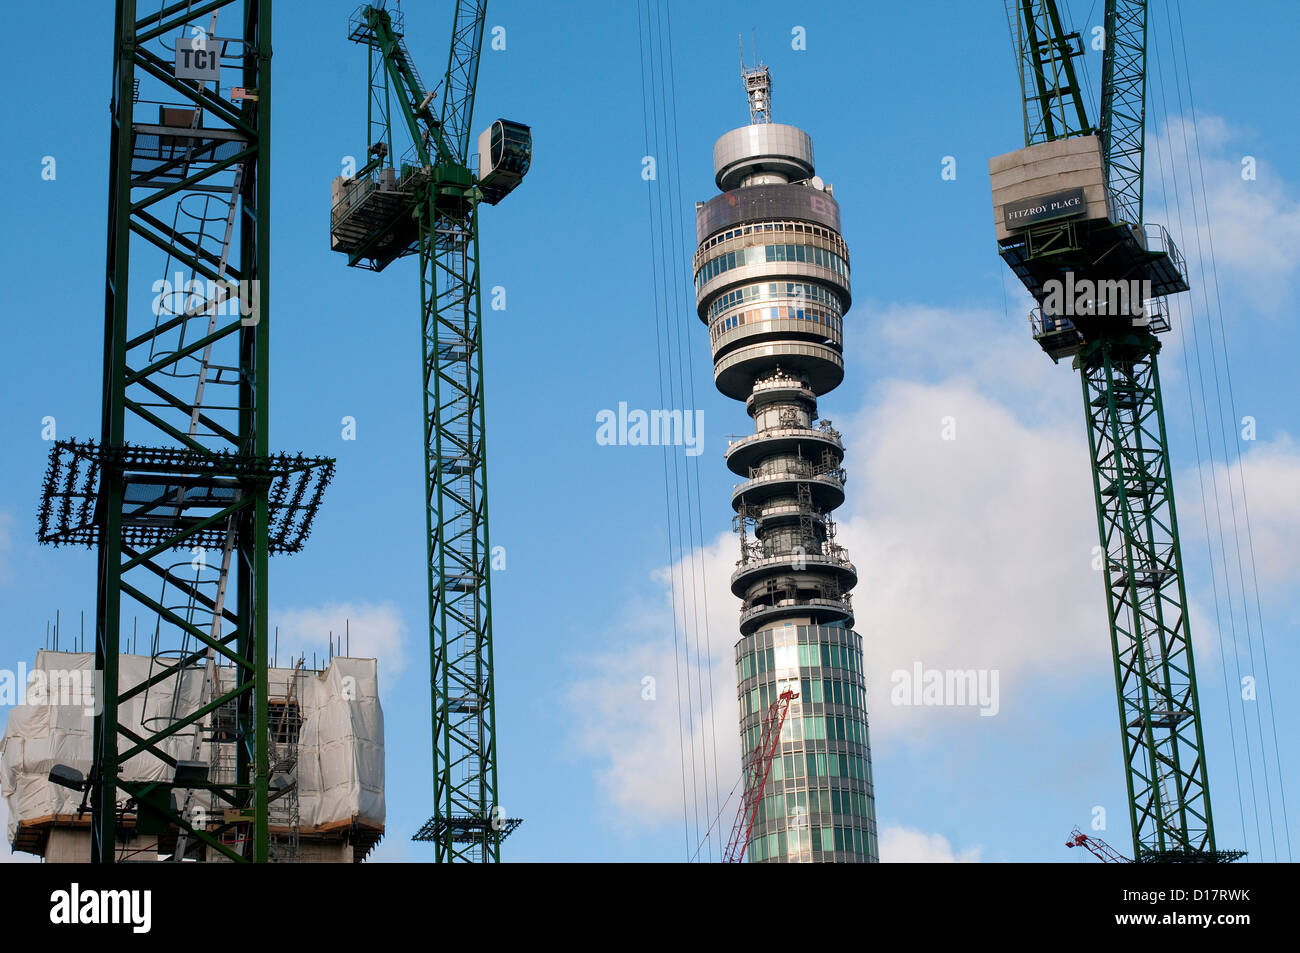 bt tower and cranes, london, england - Stock Image